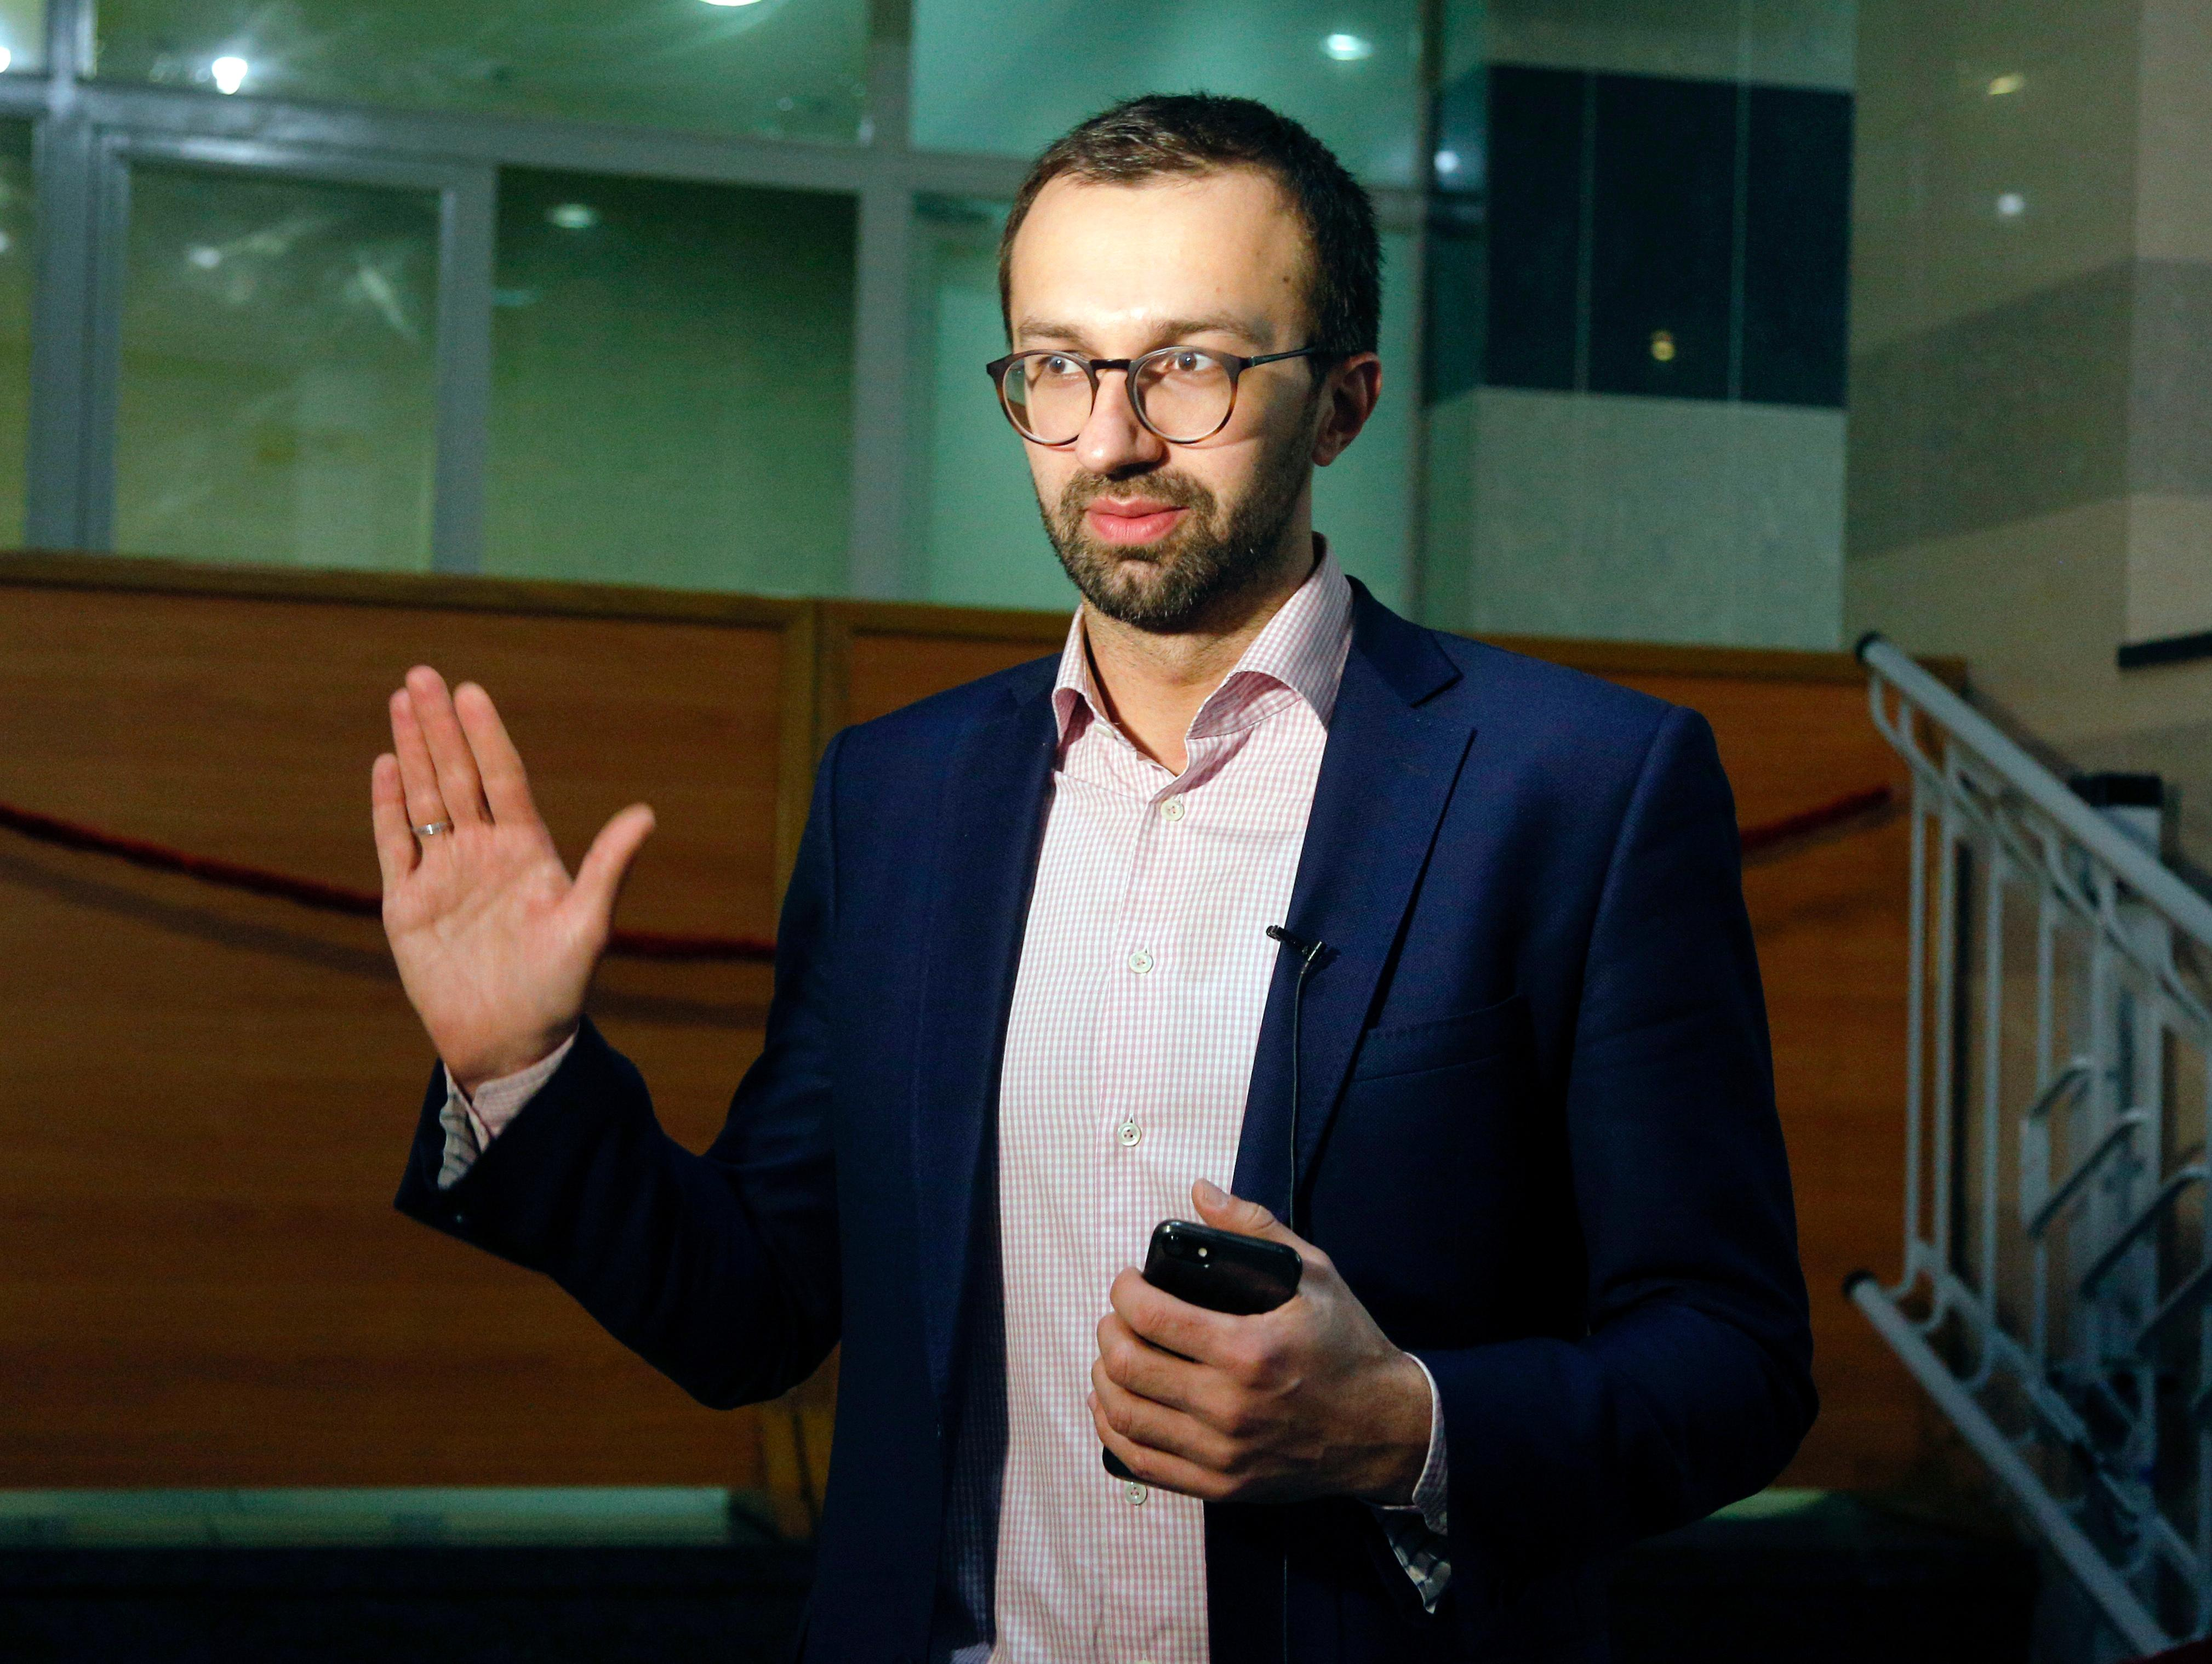 FILE - In this file photo dated Friday, Nov. 3, 2017, Ukrainian lawmaker Serhiy Leshchenko gestures, during an interview with the Associated Press in Kiev, Ukraine.  Ukrainian opposition lawmaker Serhiy Leshchenko, who helped uncover off-the-books payments to President Donald Trump's former campaign chairman Paul Manafort, said Saturday Feb. 24, 2018,  that Austrian chancellor Alfred Gusenbauer had lobbied for Ukraine when Yanukovych was in power, although Gusenbauer told the Austrian national news agency APA that he never acted on Yanukovych's behalf. (AP Photo/Efrem Lukatsky, FILE)